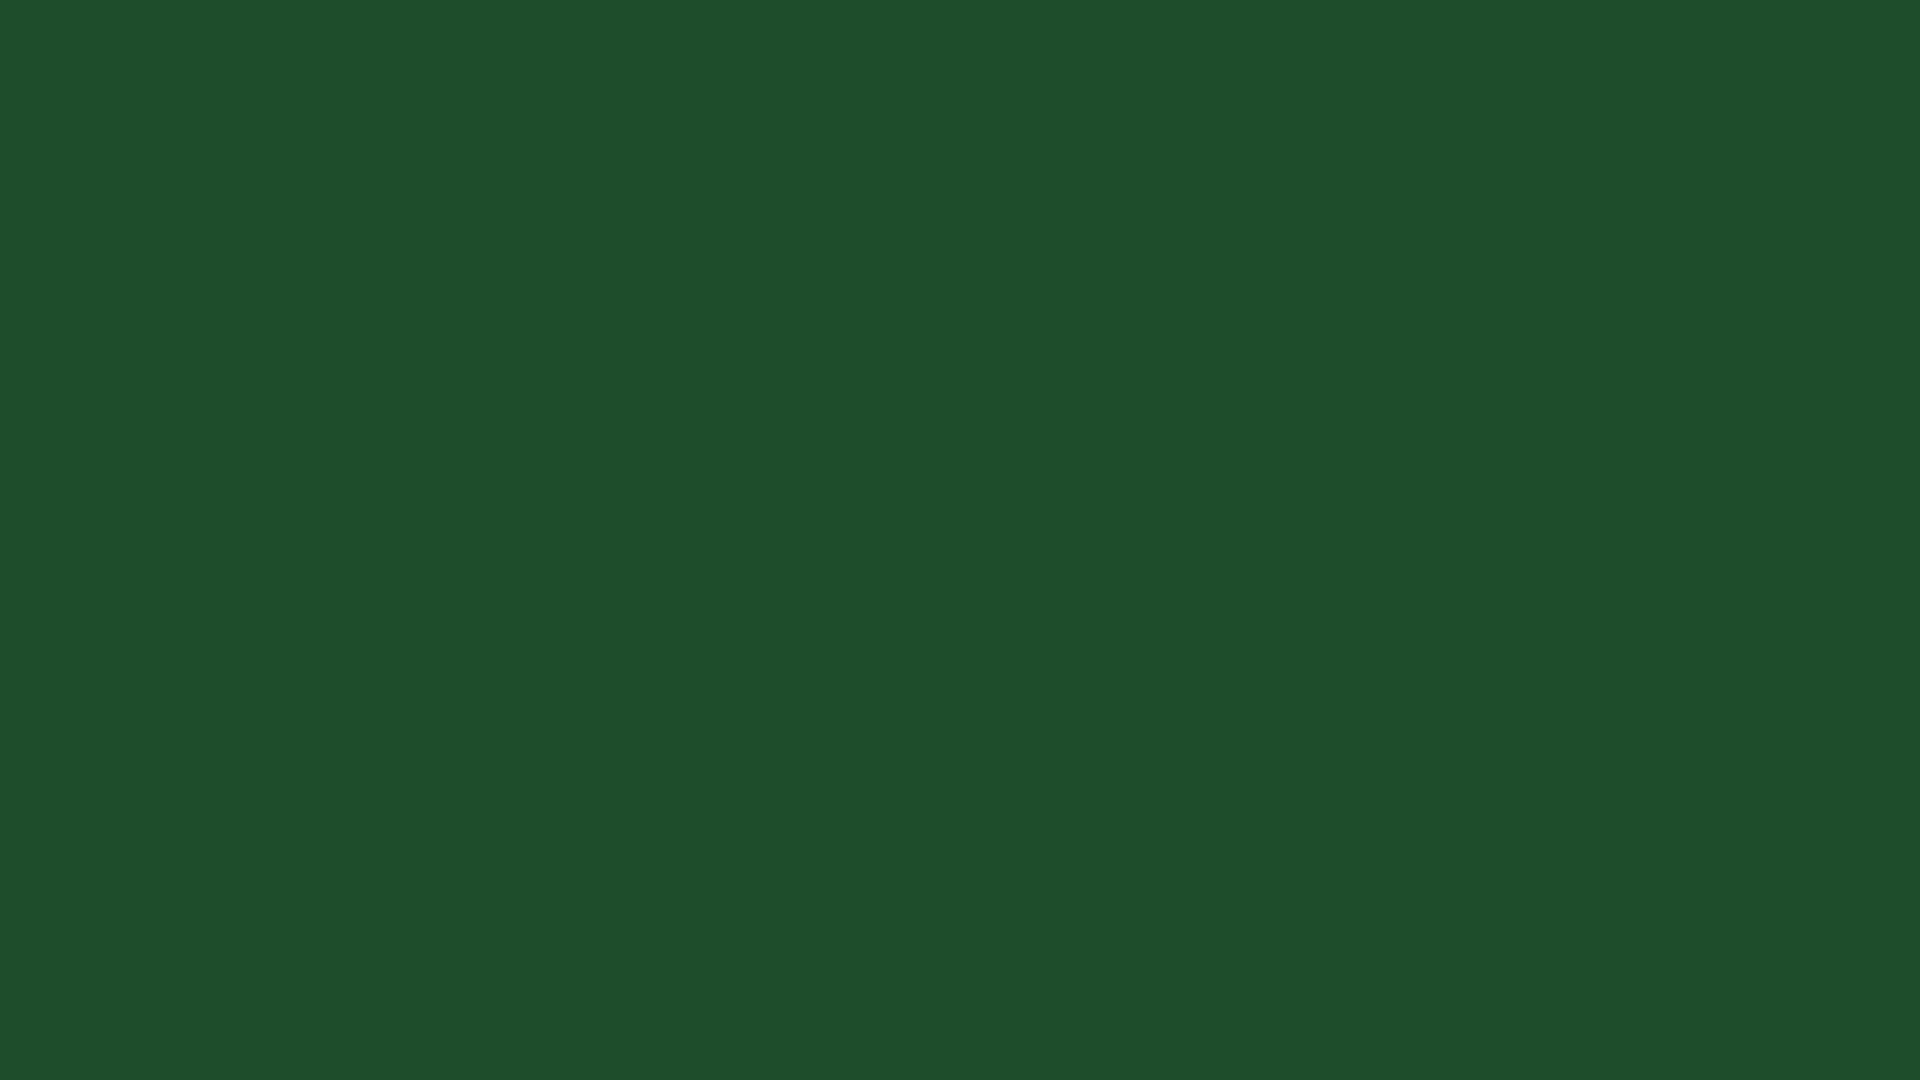 1920x1080 Cal Poly Green Solid Color Background